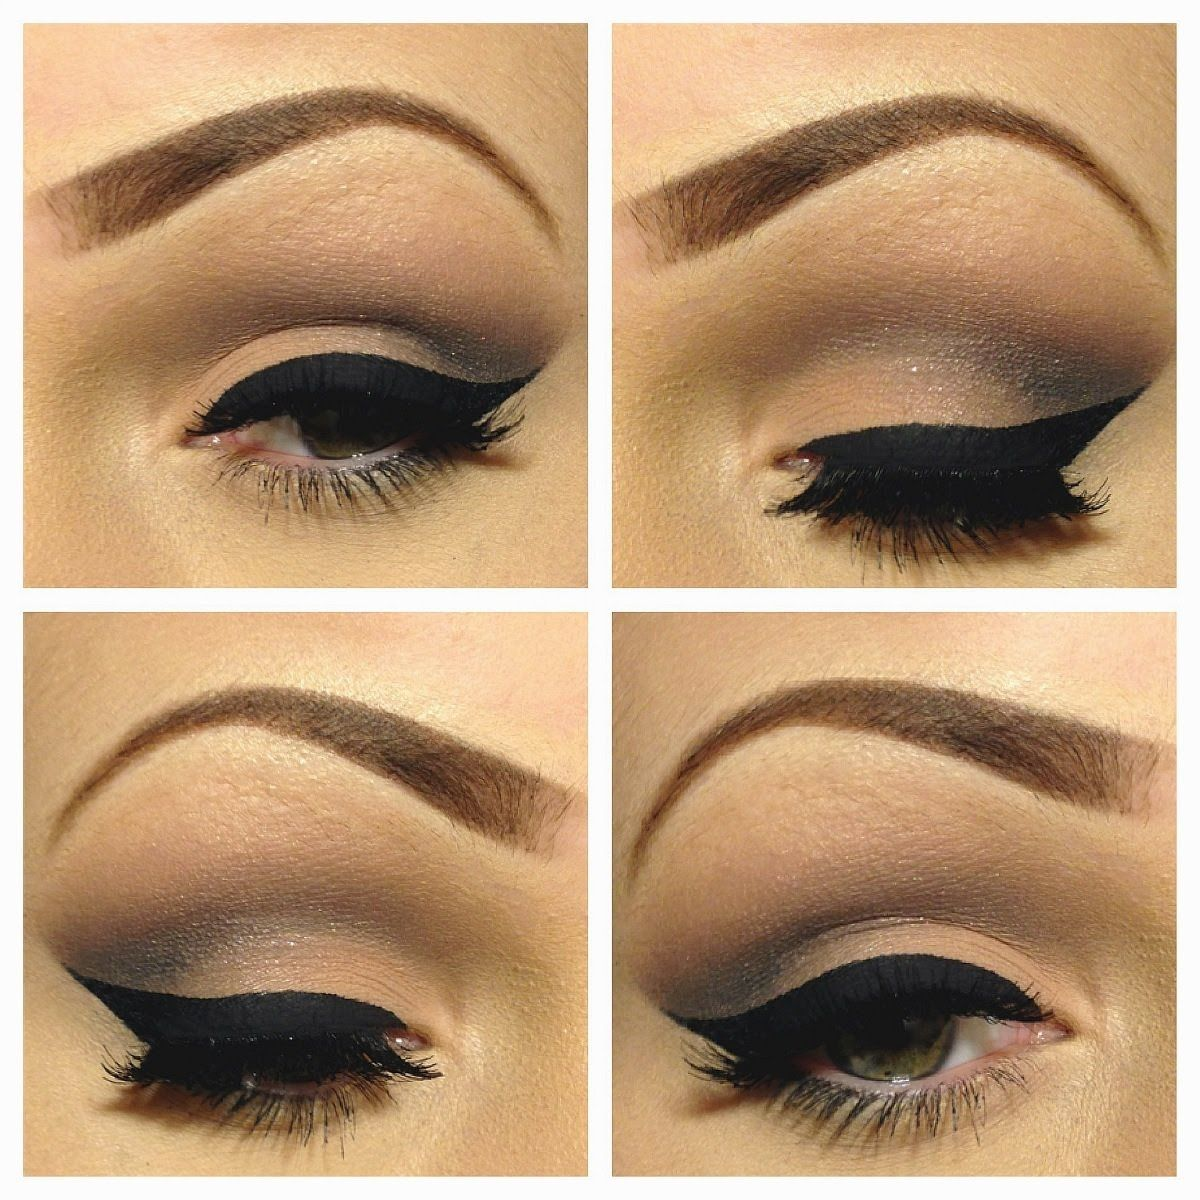 Neutral Eye Makeup With Heavy Black Cat Eye Liner Makeup And